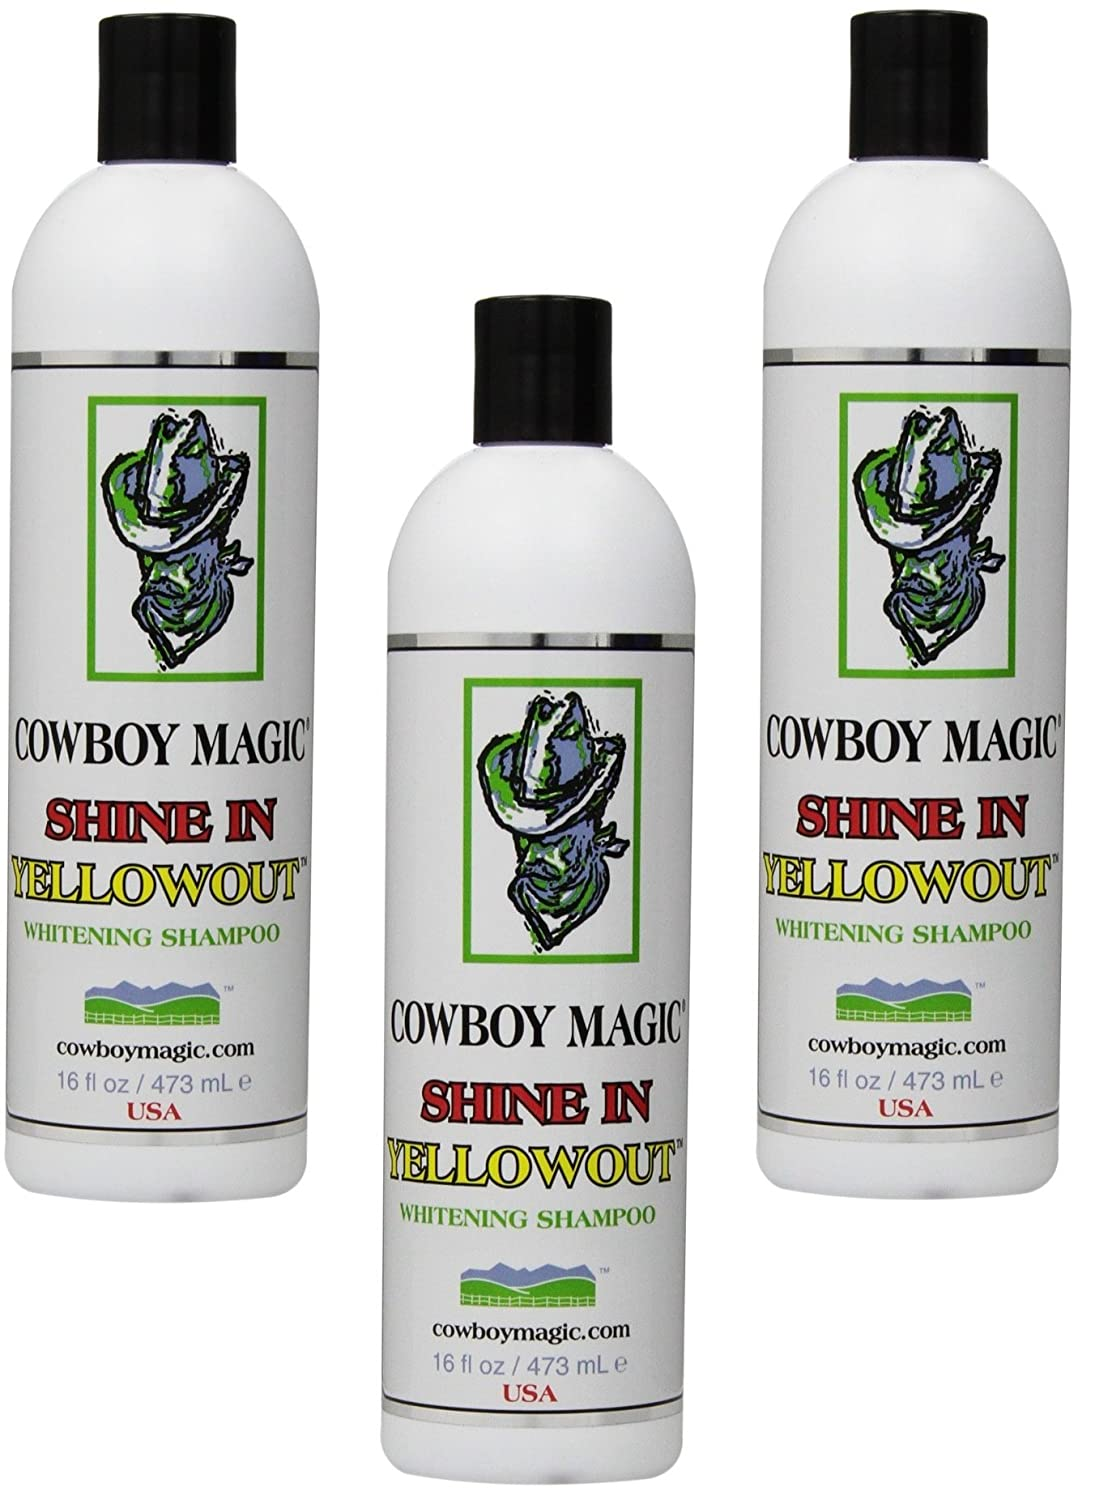 Cowboy Magic 3 Pack of Shine in Yellowout, 16 Ounces Each, Whitening Shampoo for Horses and Humans